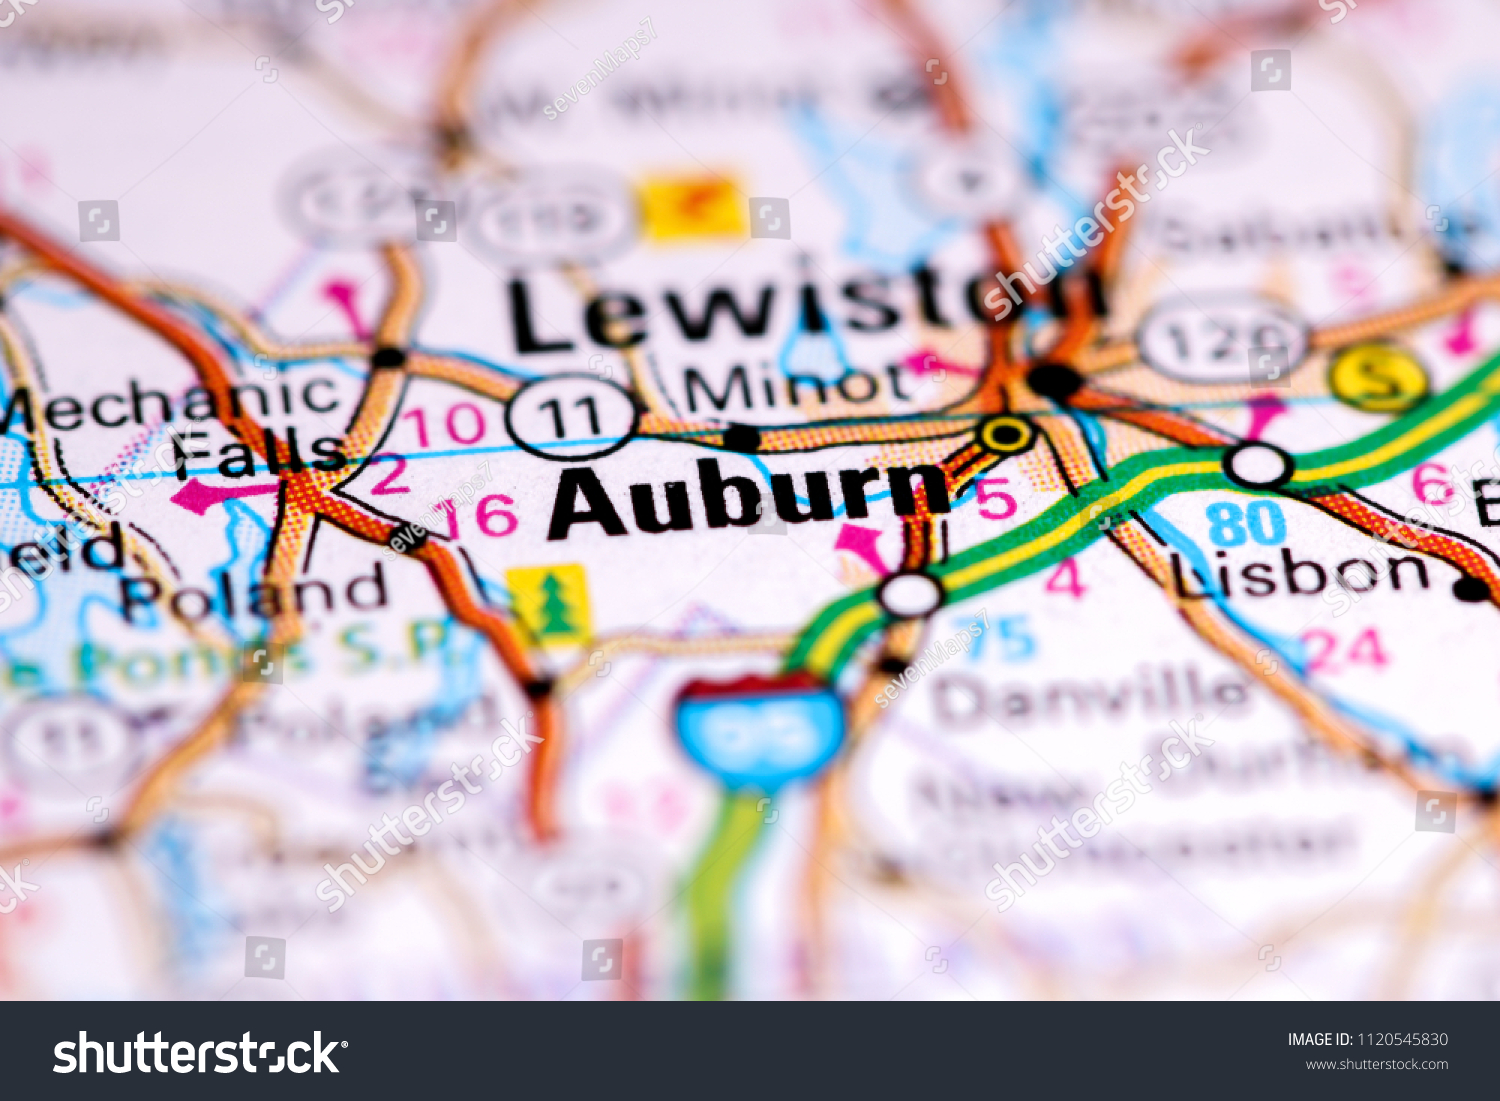 Auburn Maine Usa On Map Stock Photo Edit Now 1120545830 Shutterstock